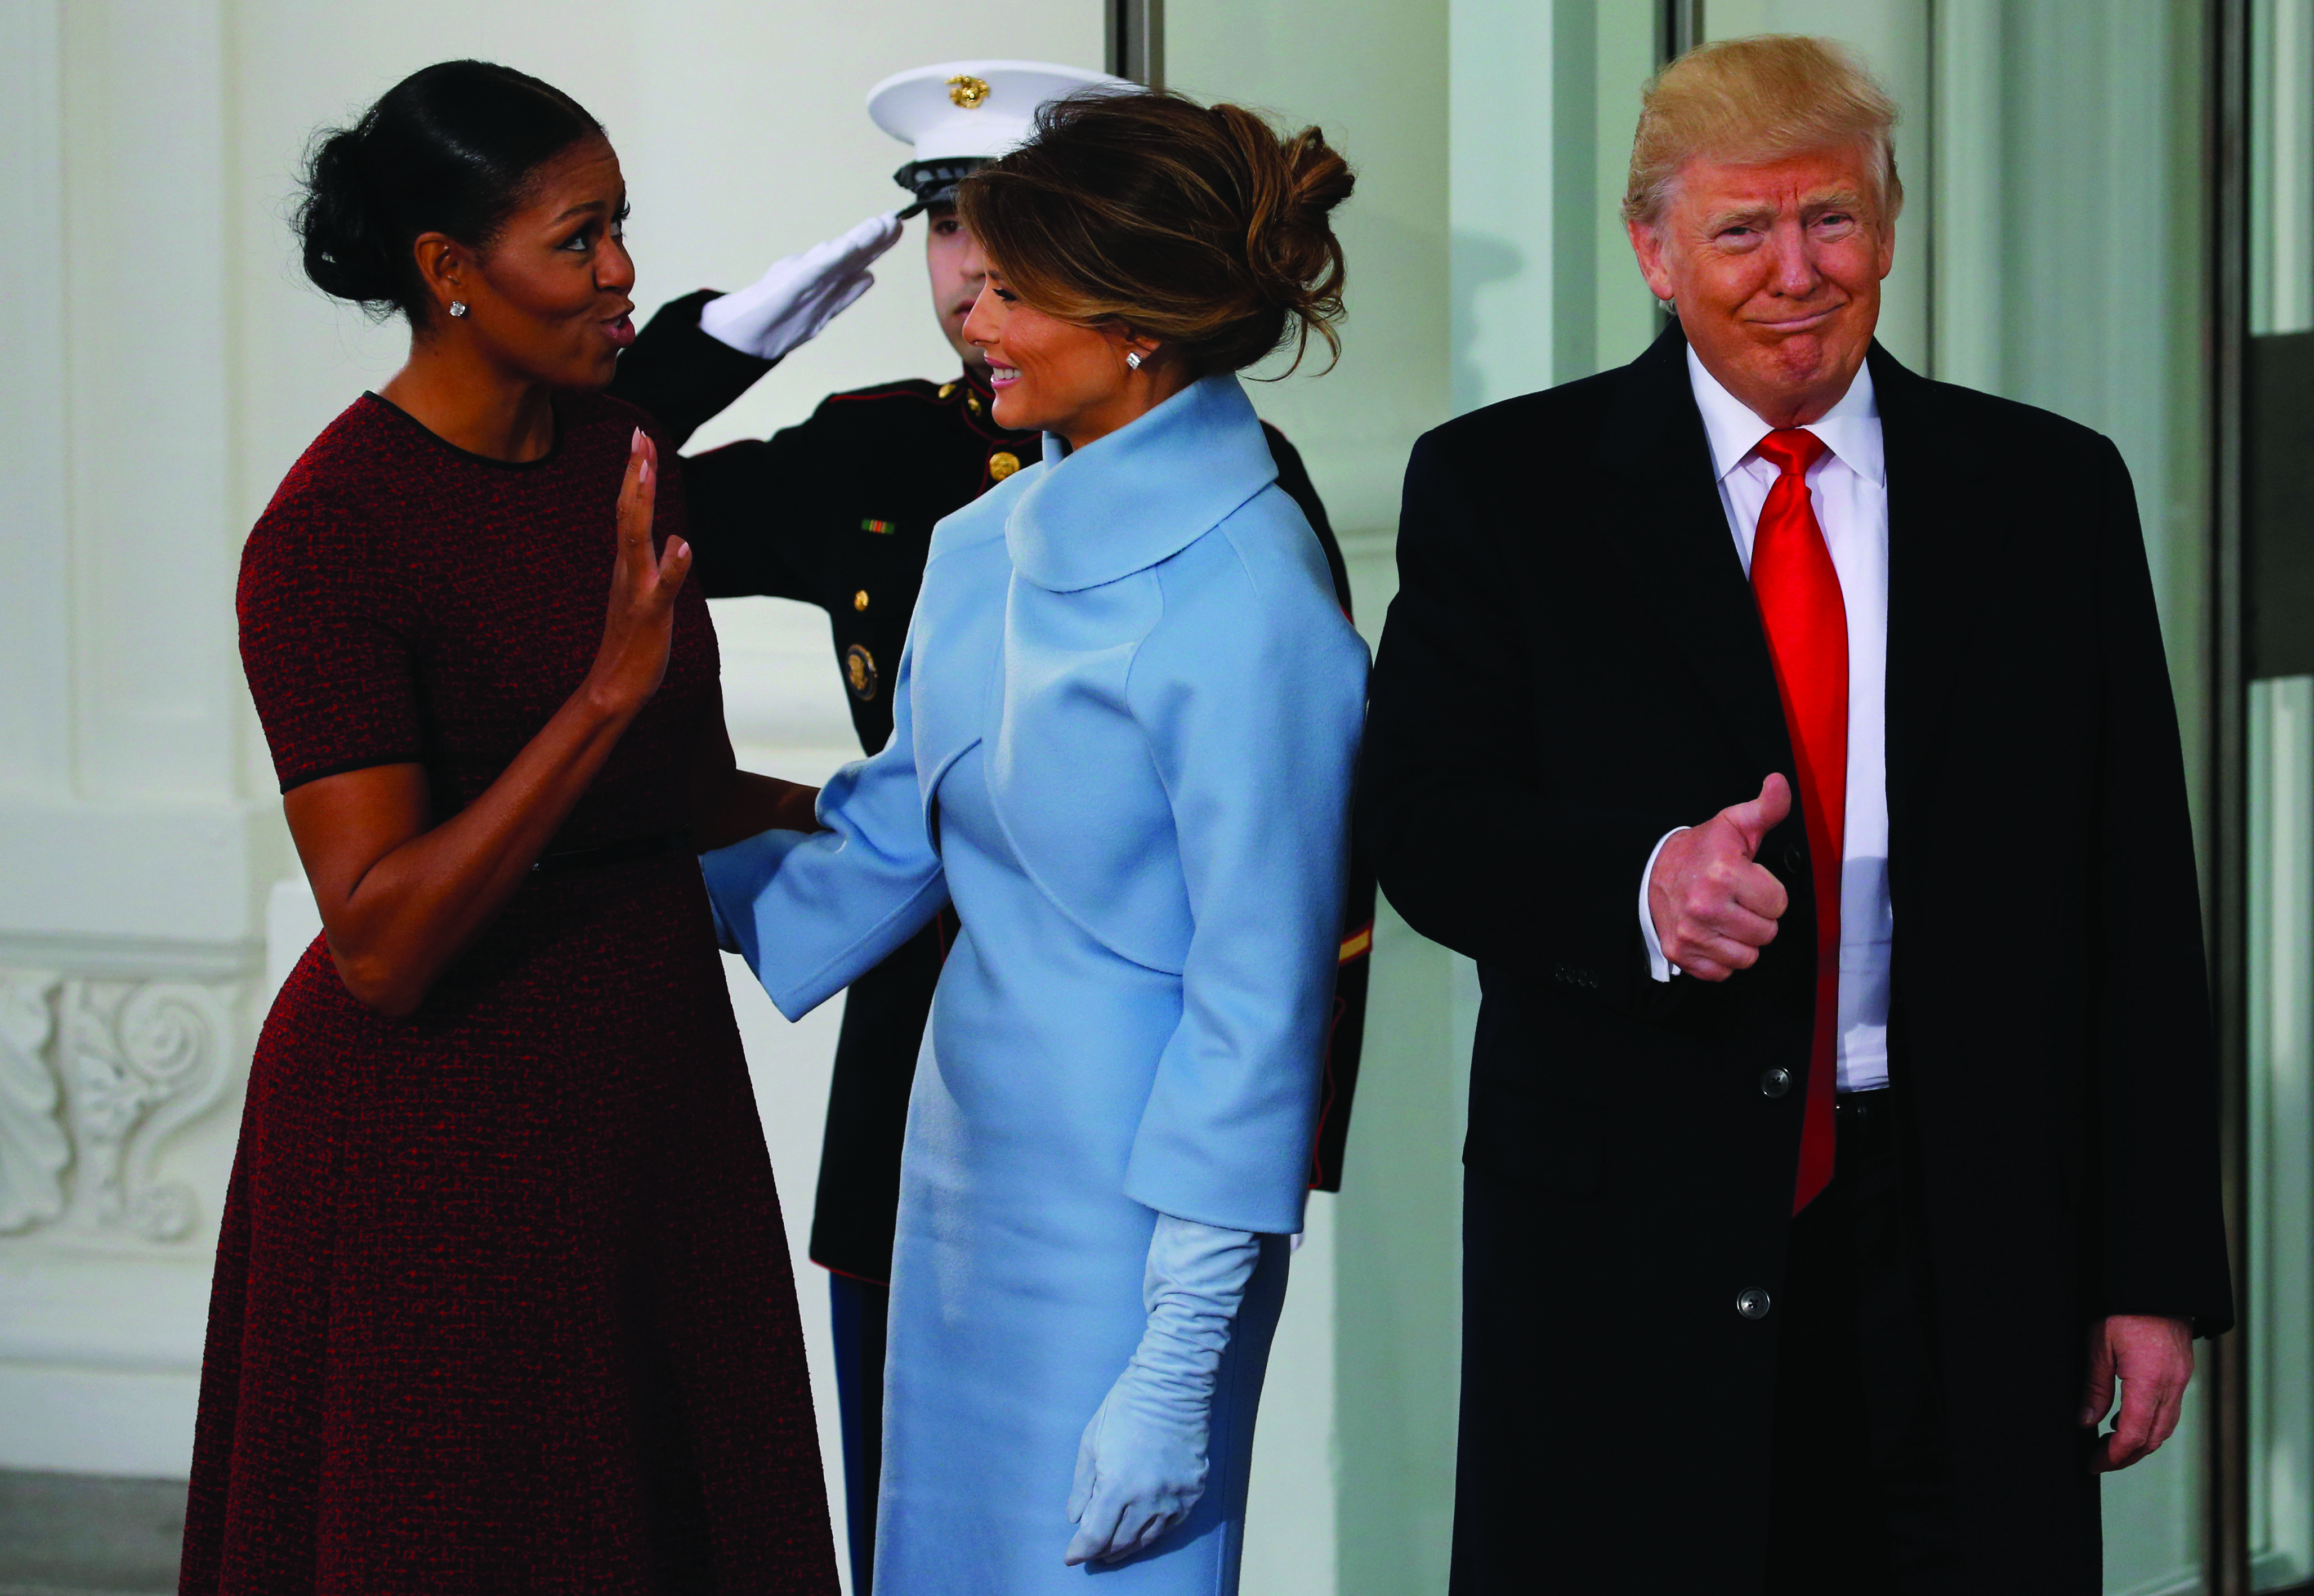 U.S. first lady Michelle Obama (L) greets U.S. President-elect Donald Trump (R) and his wife Melania for tea before the inauguration at the White House in Washington, U.S. January 20, 2017. REUTERS/Jonathan Ernst